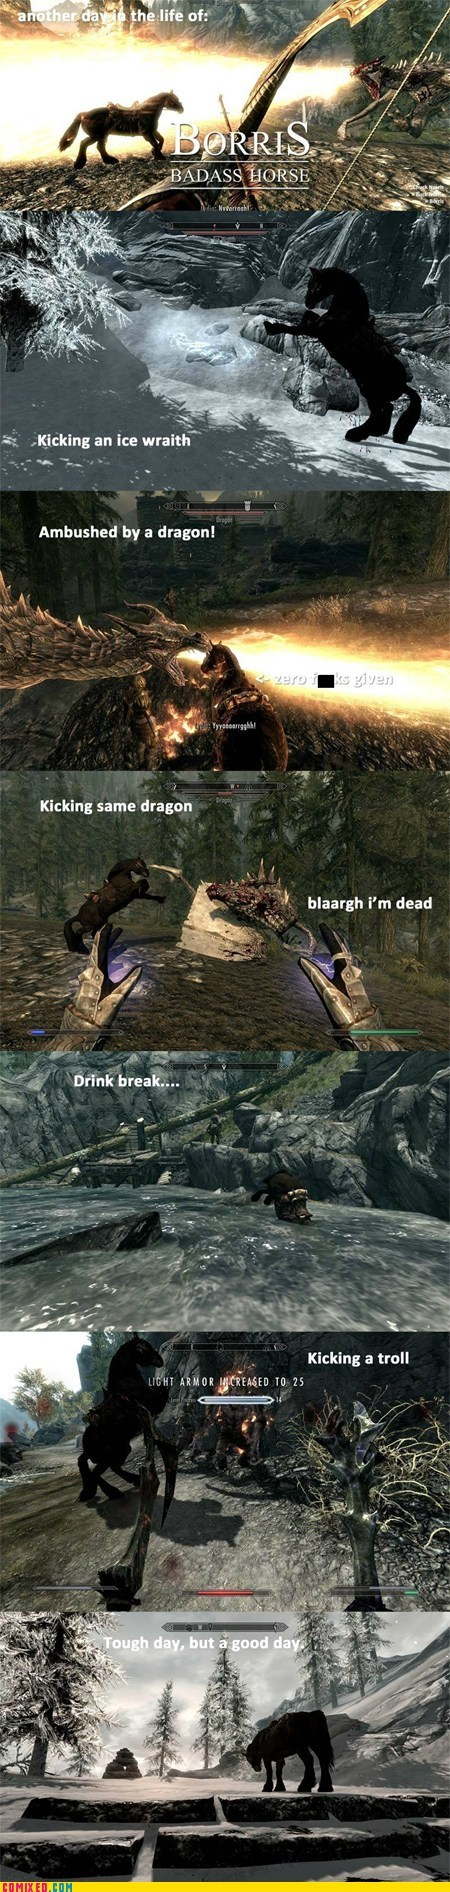 awesome borris followers horses Skyrim video games - 5435244800